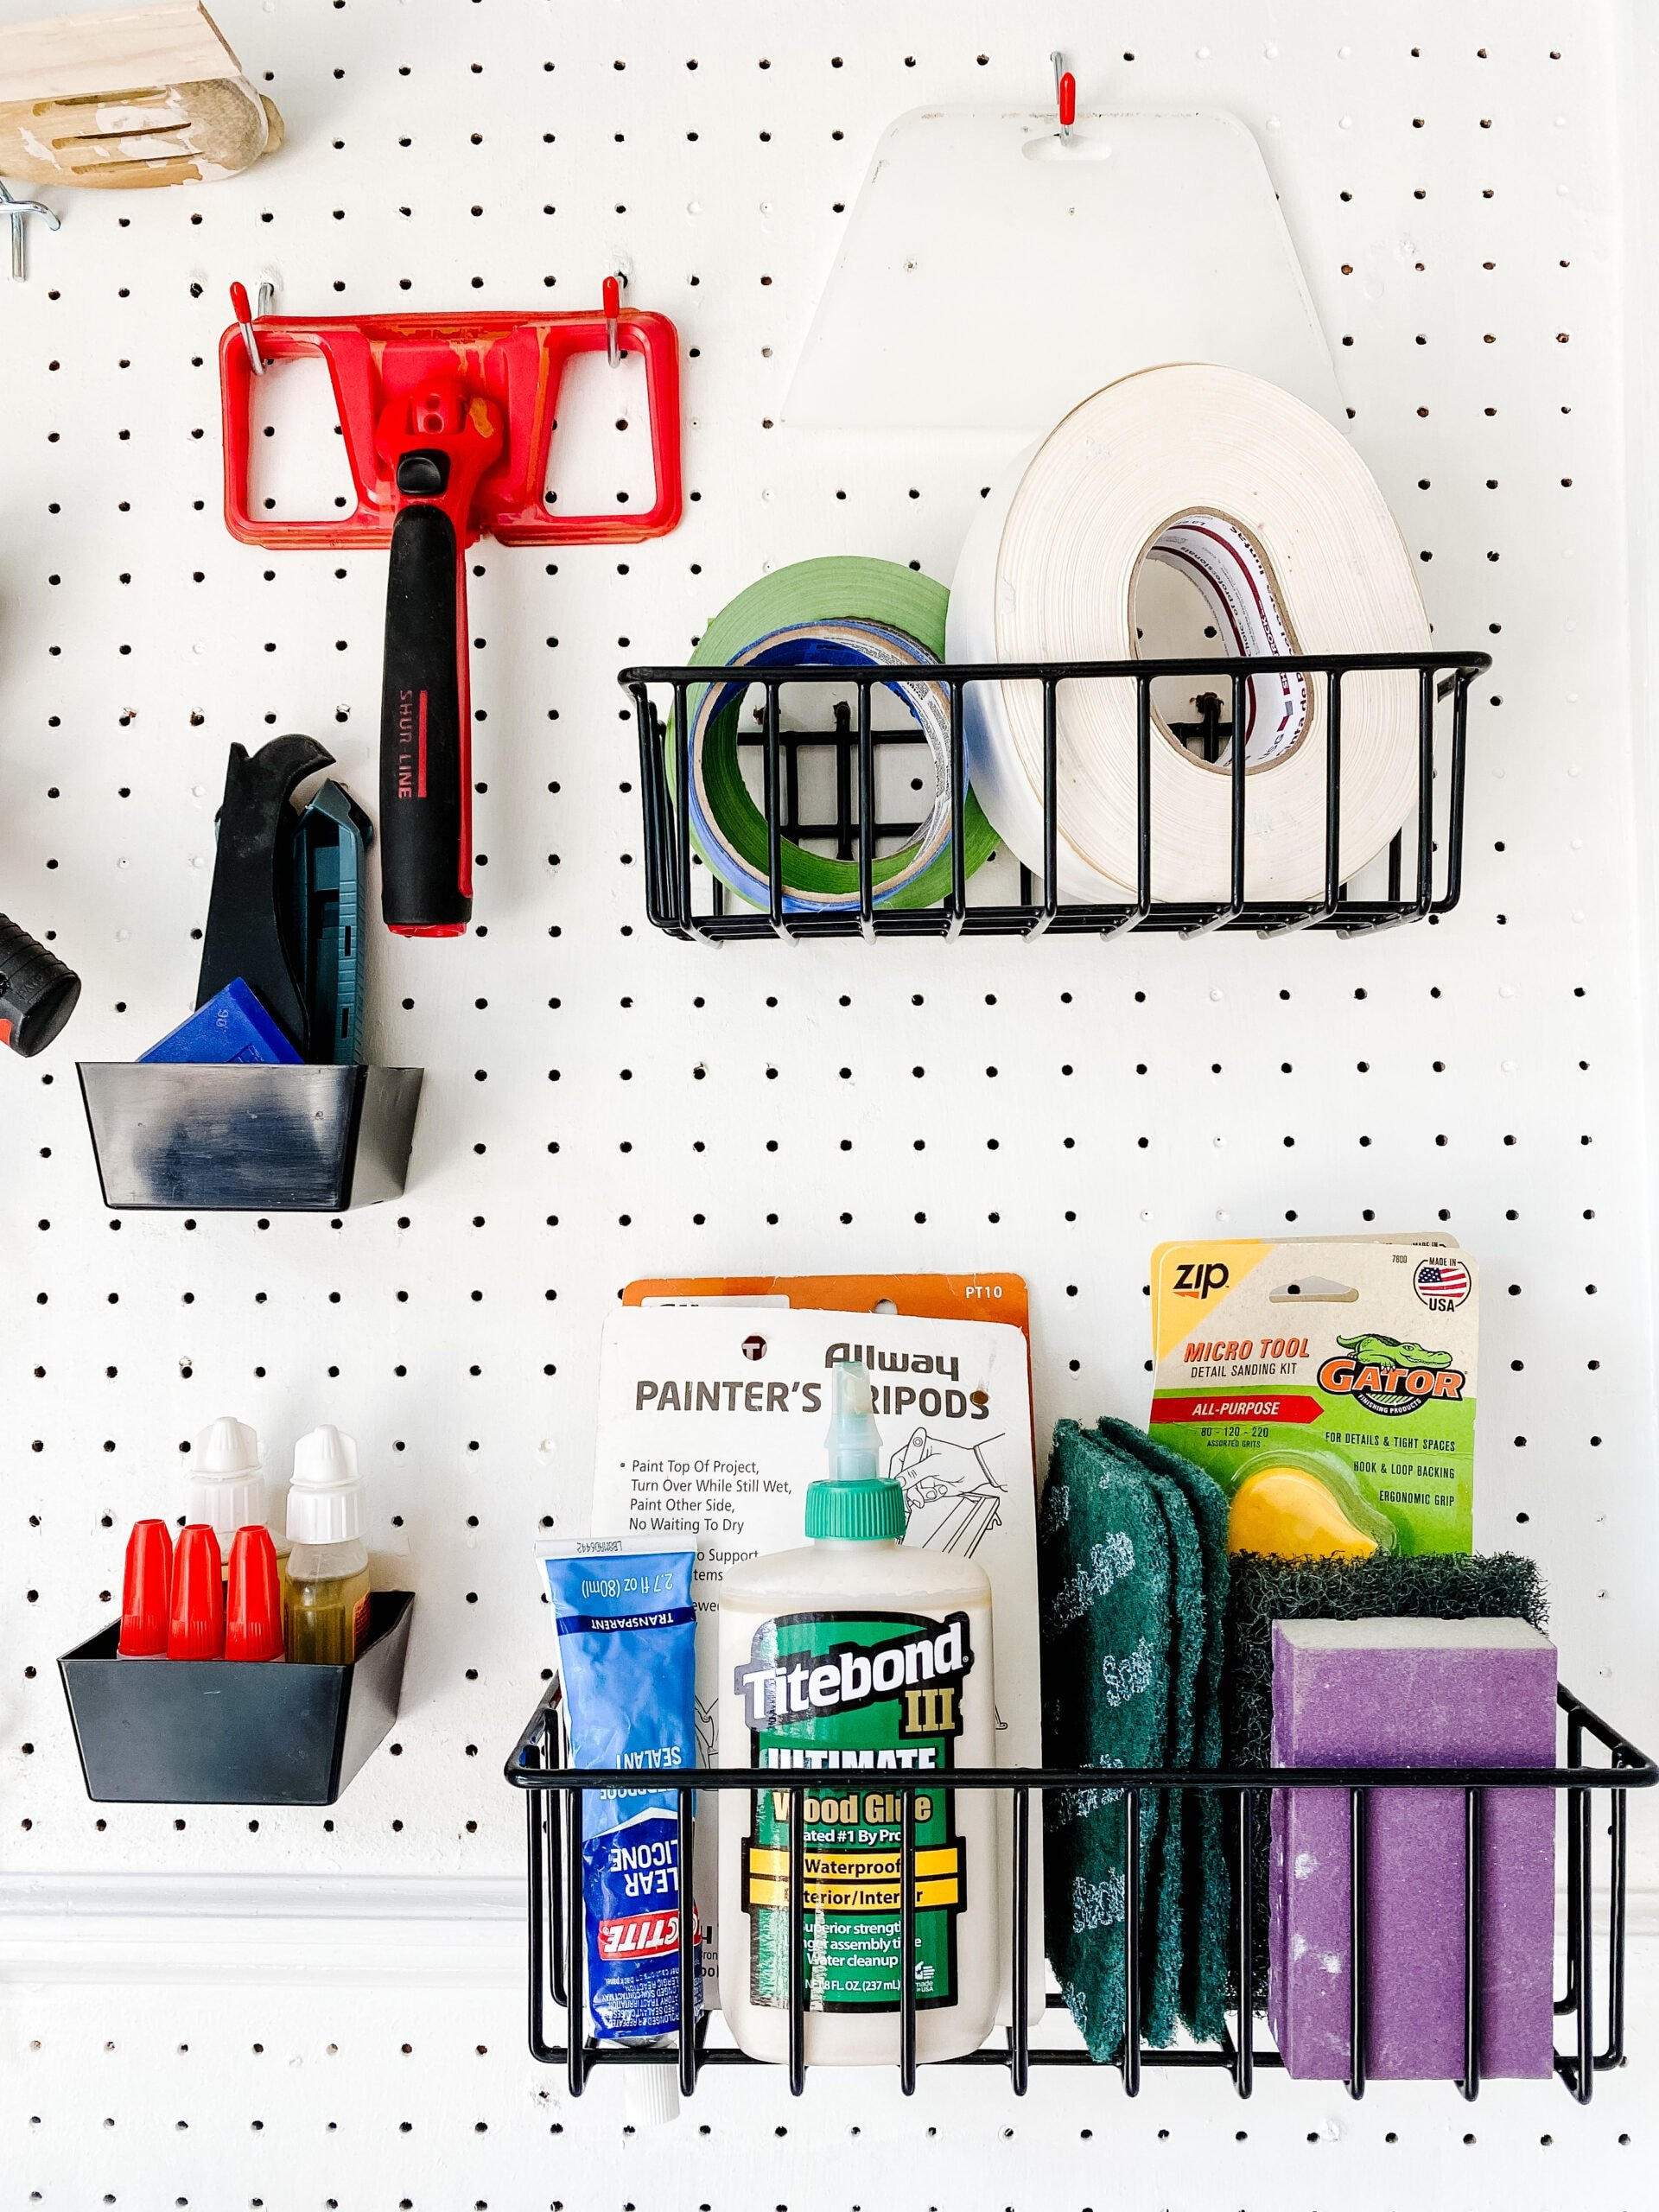 pegboard baskets for storing project supplies